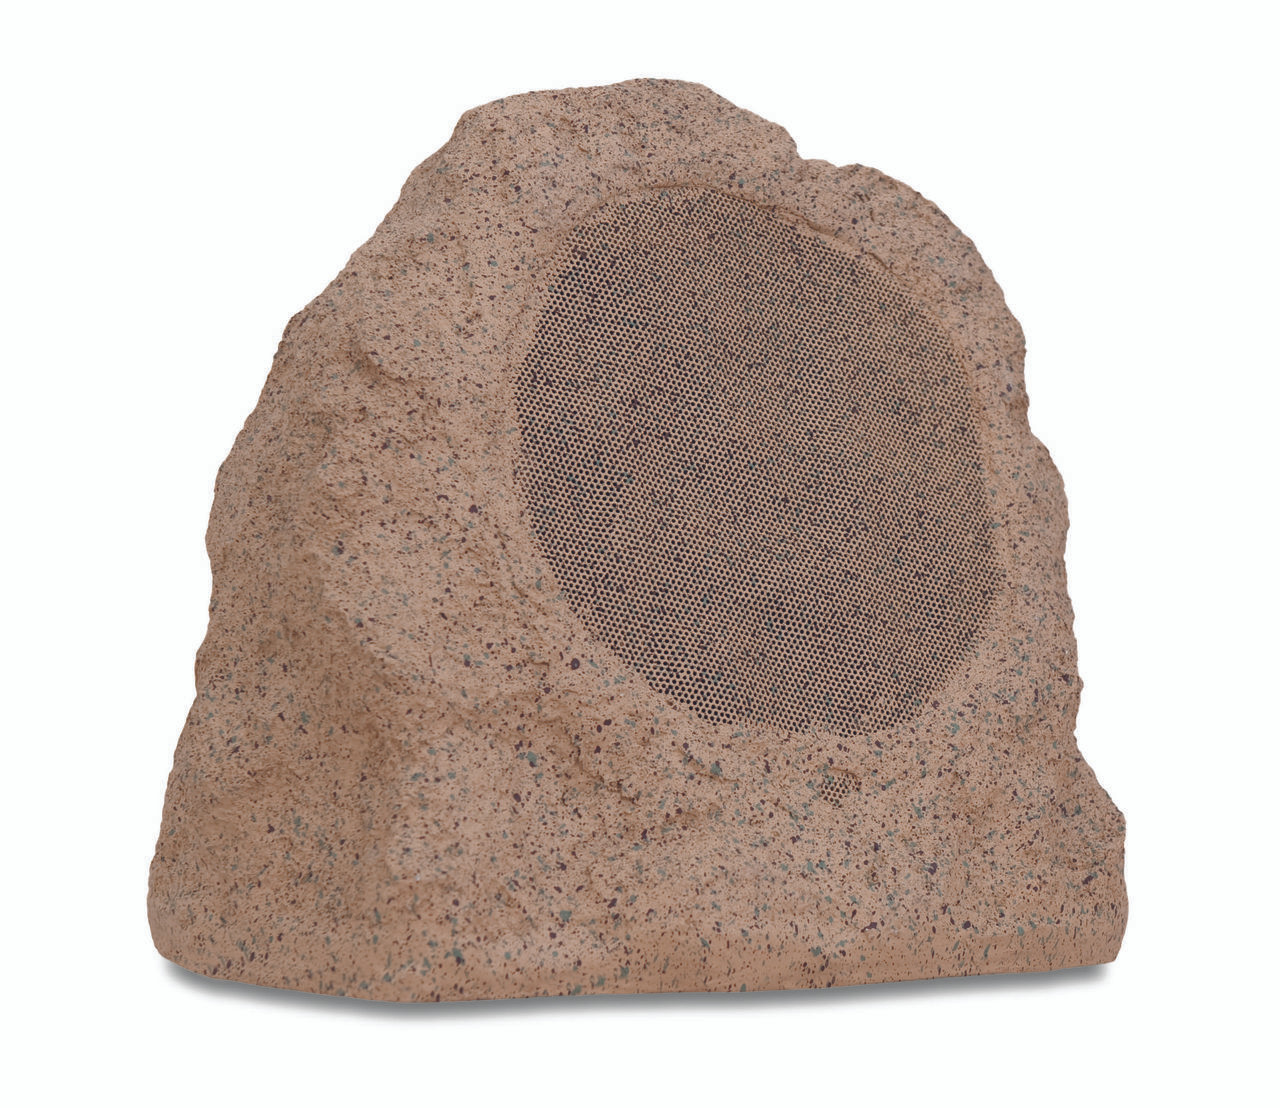 PROFICIENT AUDIO SYSTEMS R650S 6.5 Rock Speakers Sandstone